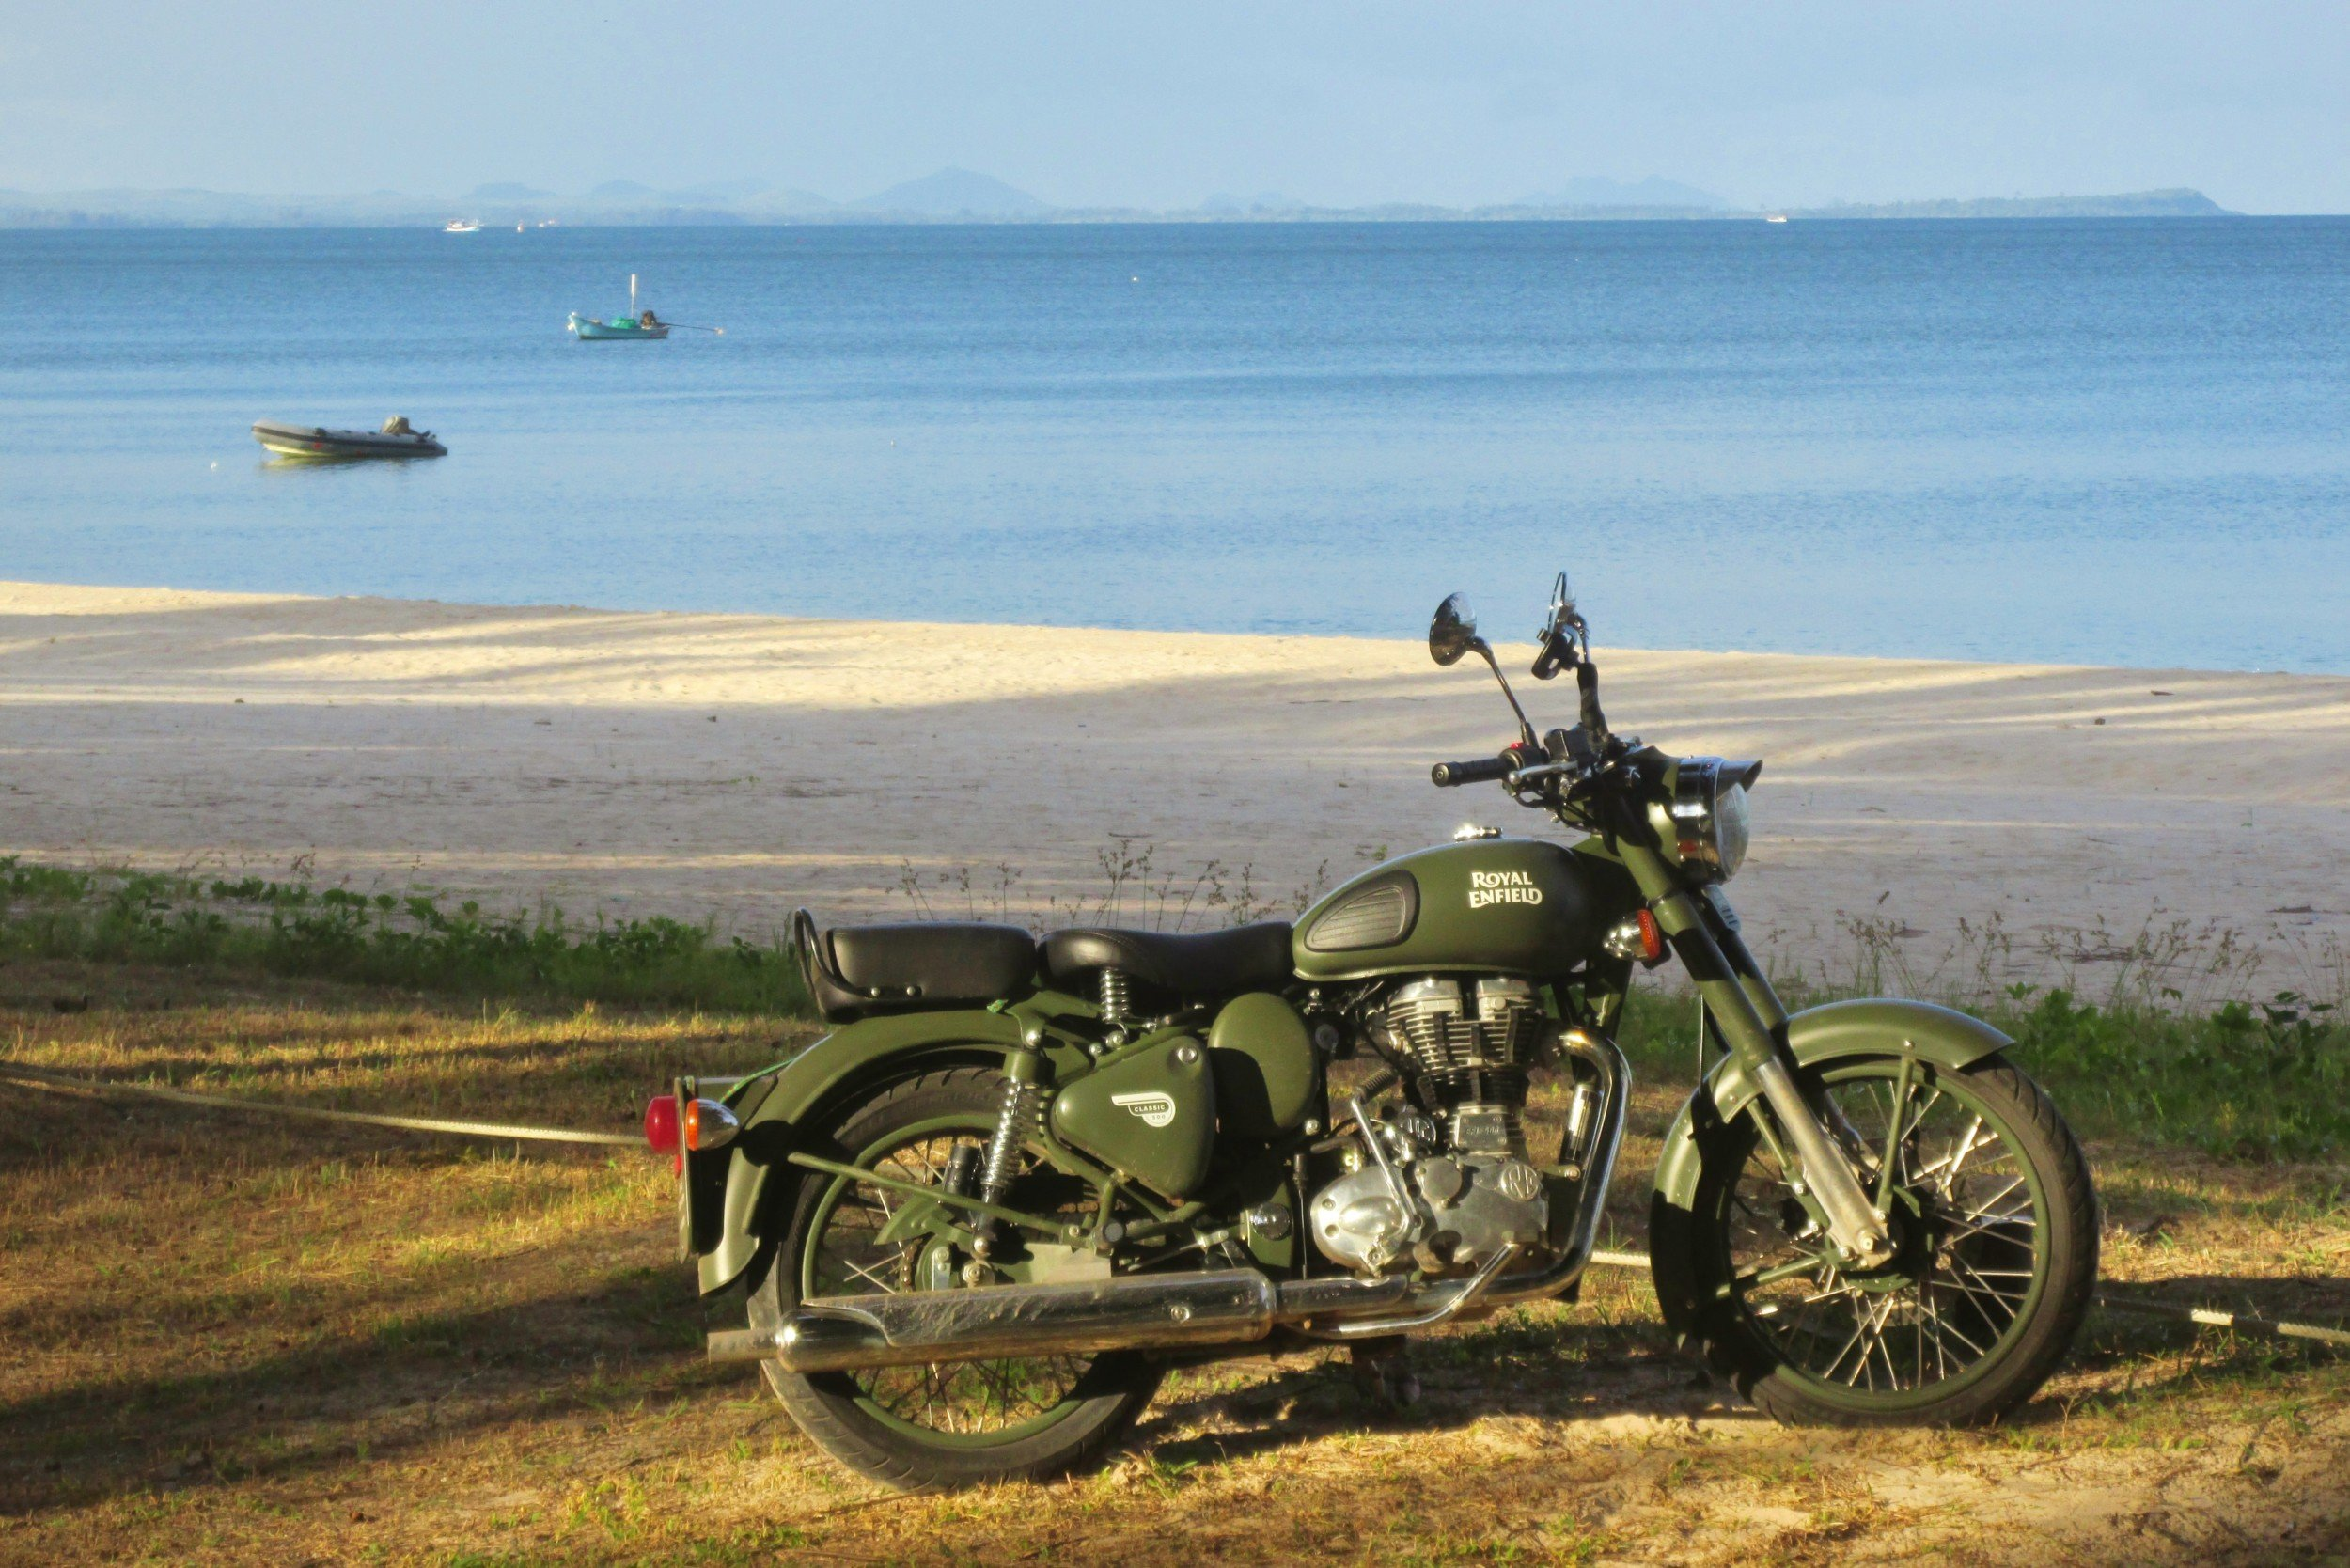 Motorcycle road trip Thailand & Laos - Jungle and Beaches of Southern Thailand